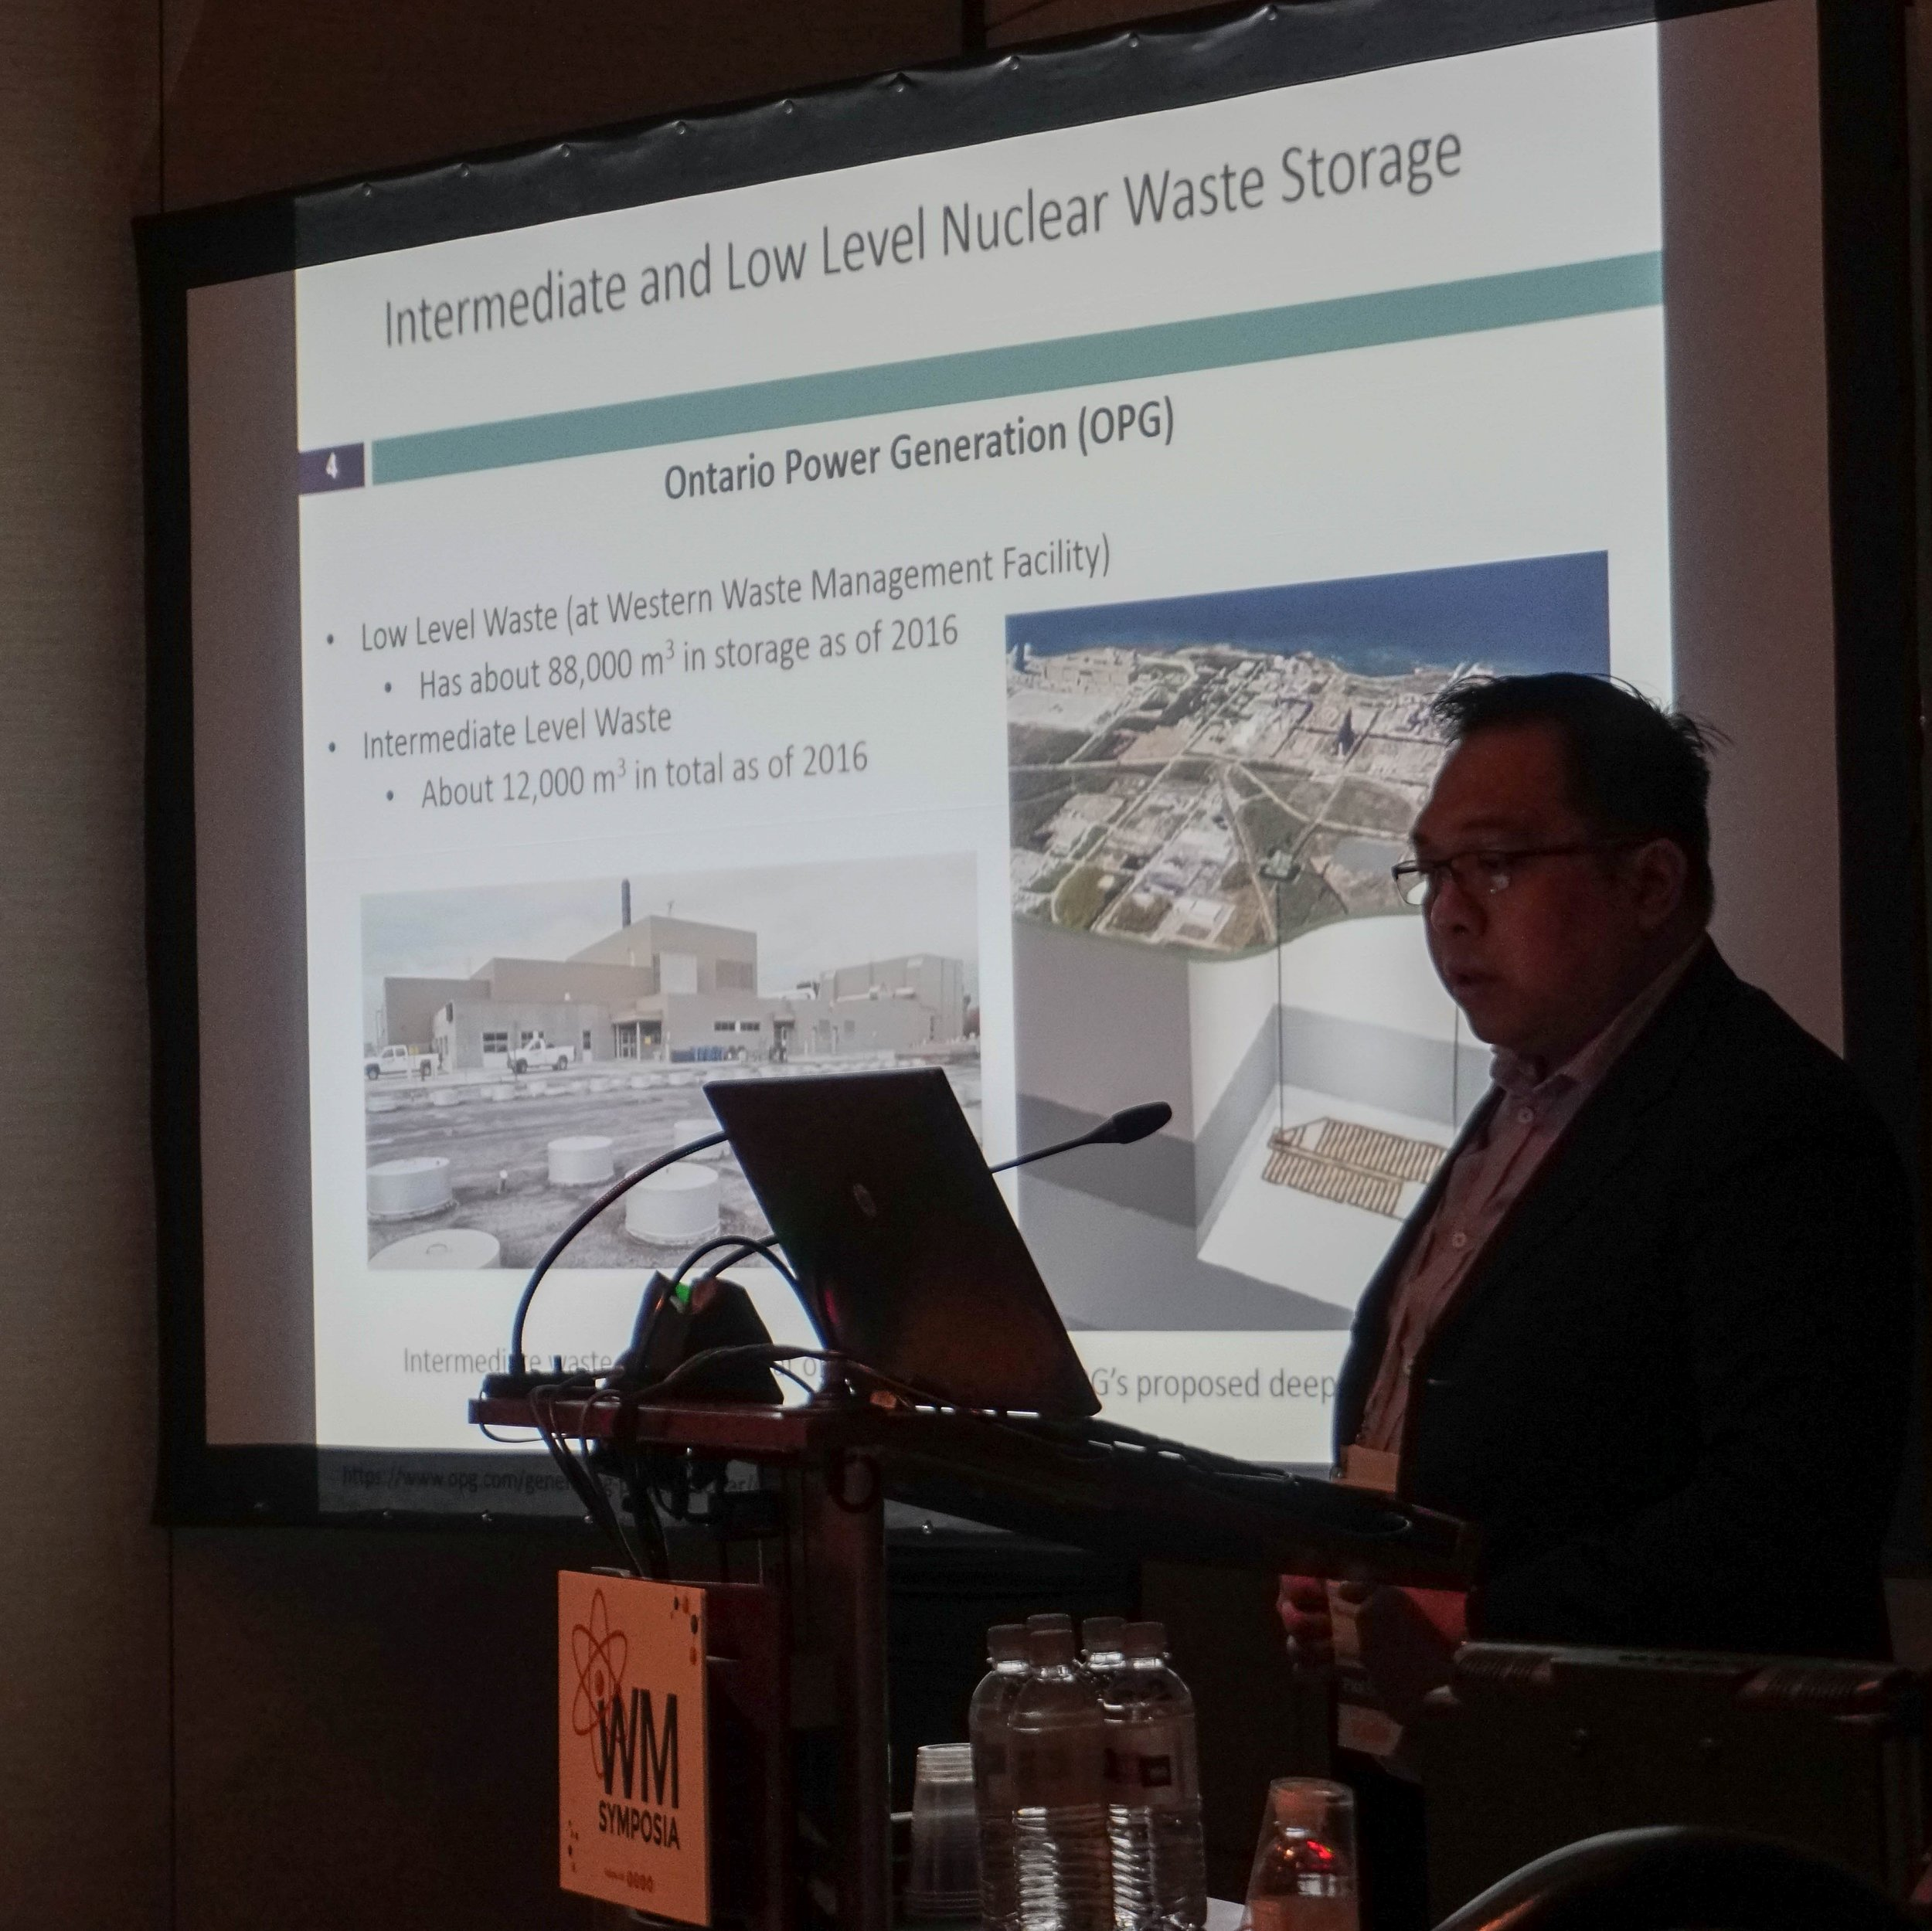 Ryan Morco presenting his work at the Waste Management Conference, March 2019.